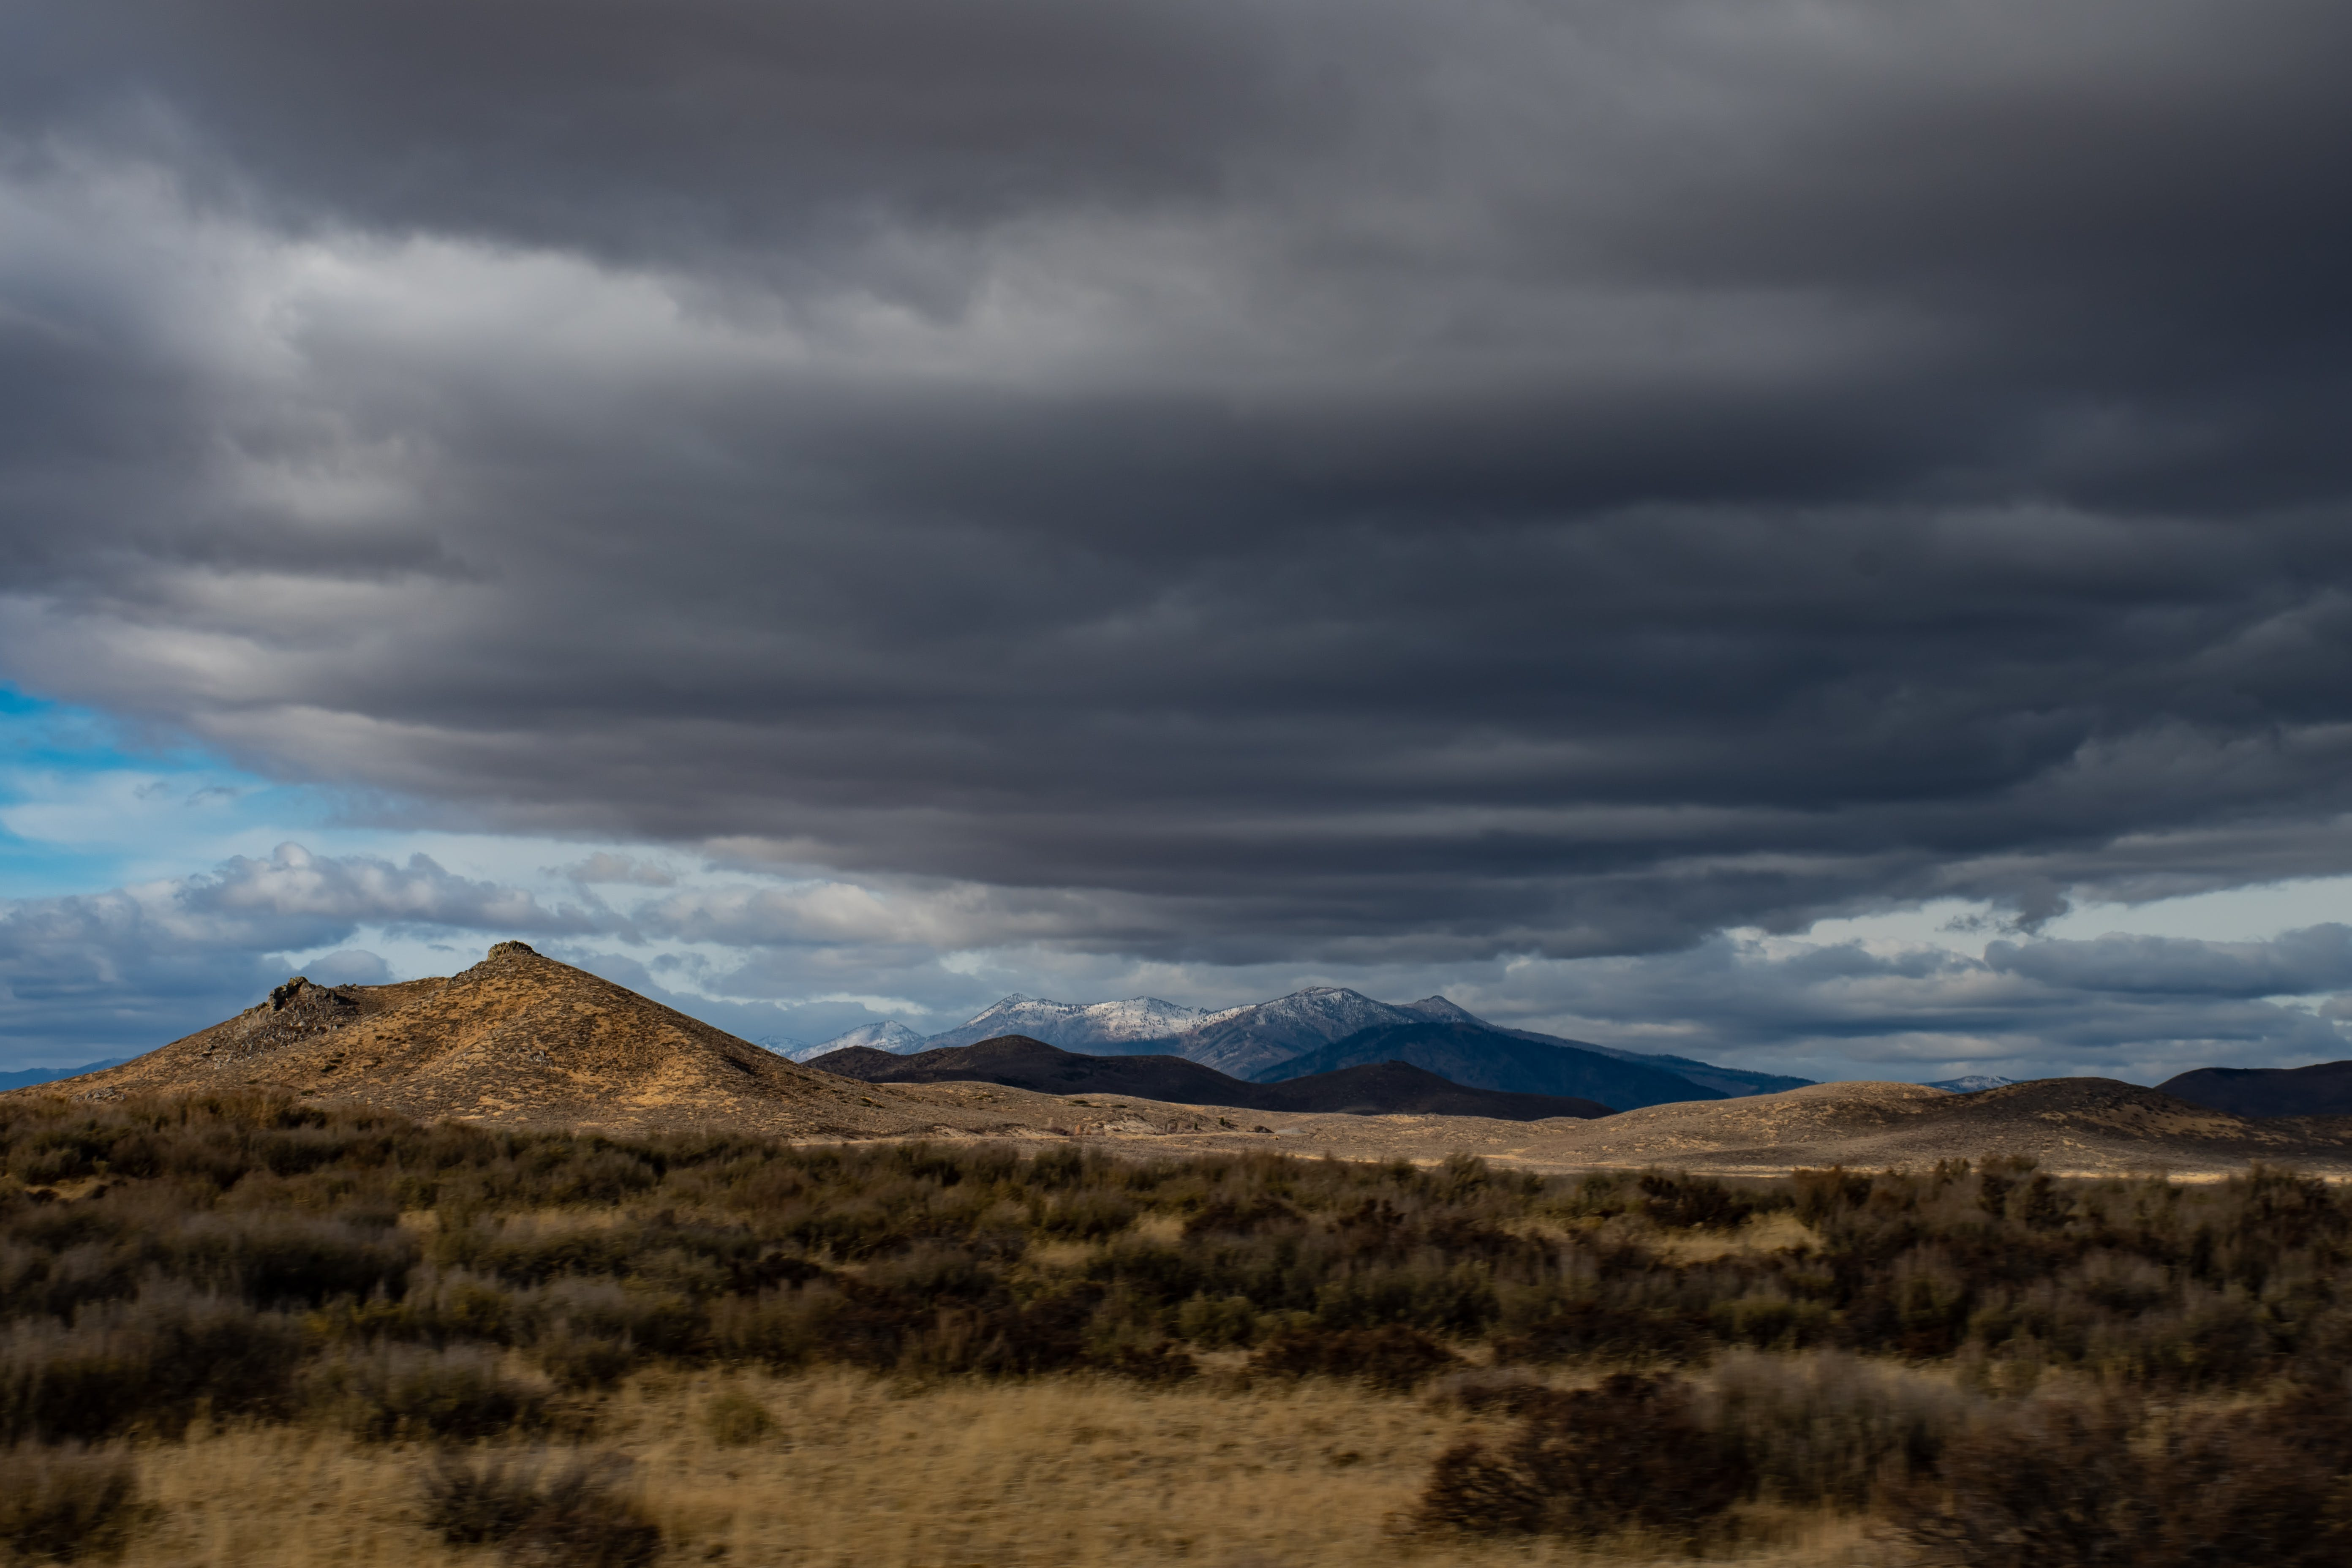 Landscape Photography of Mountains Under Gray Sky